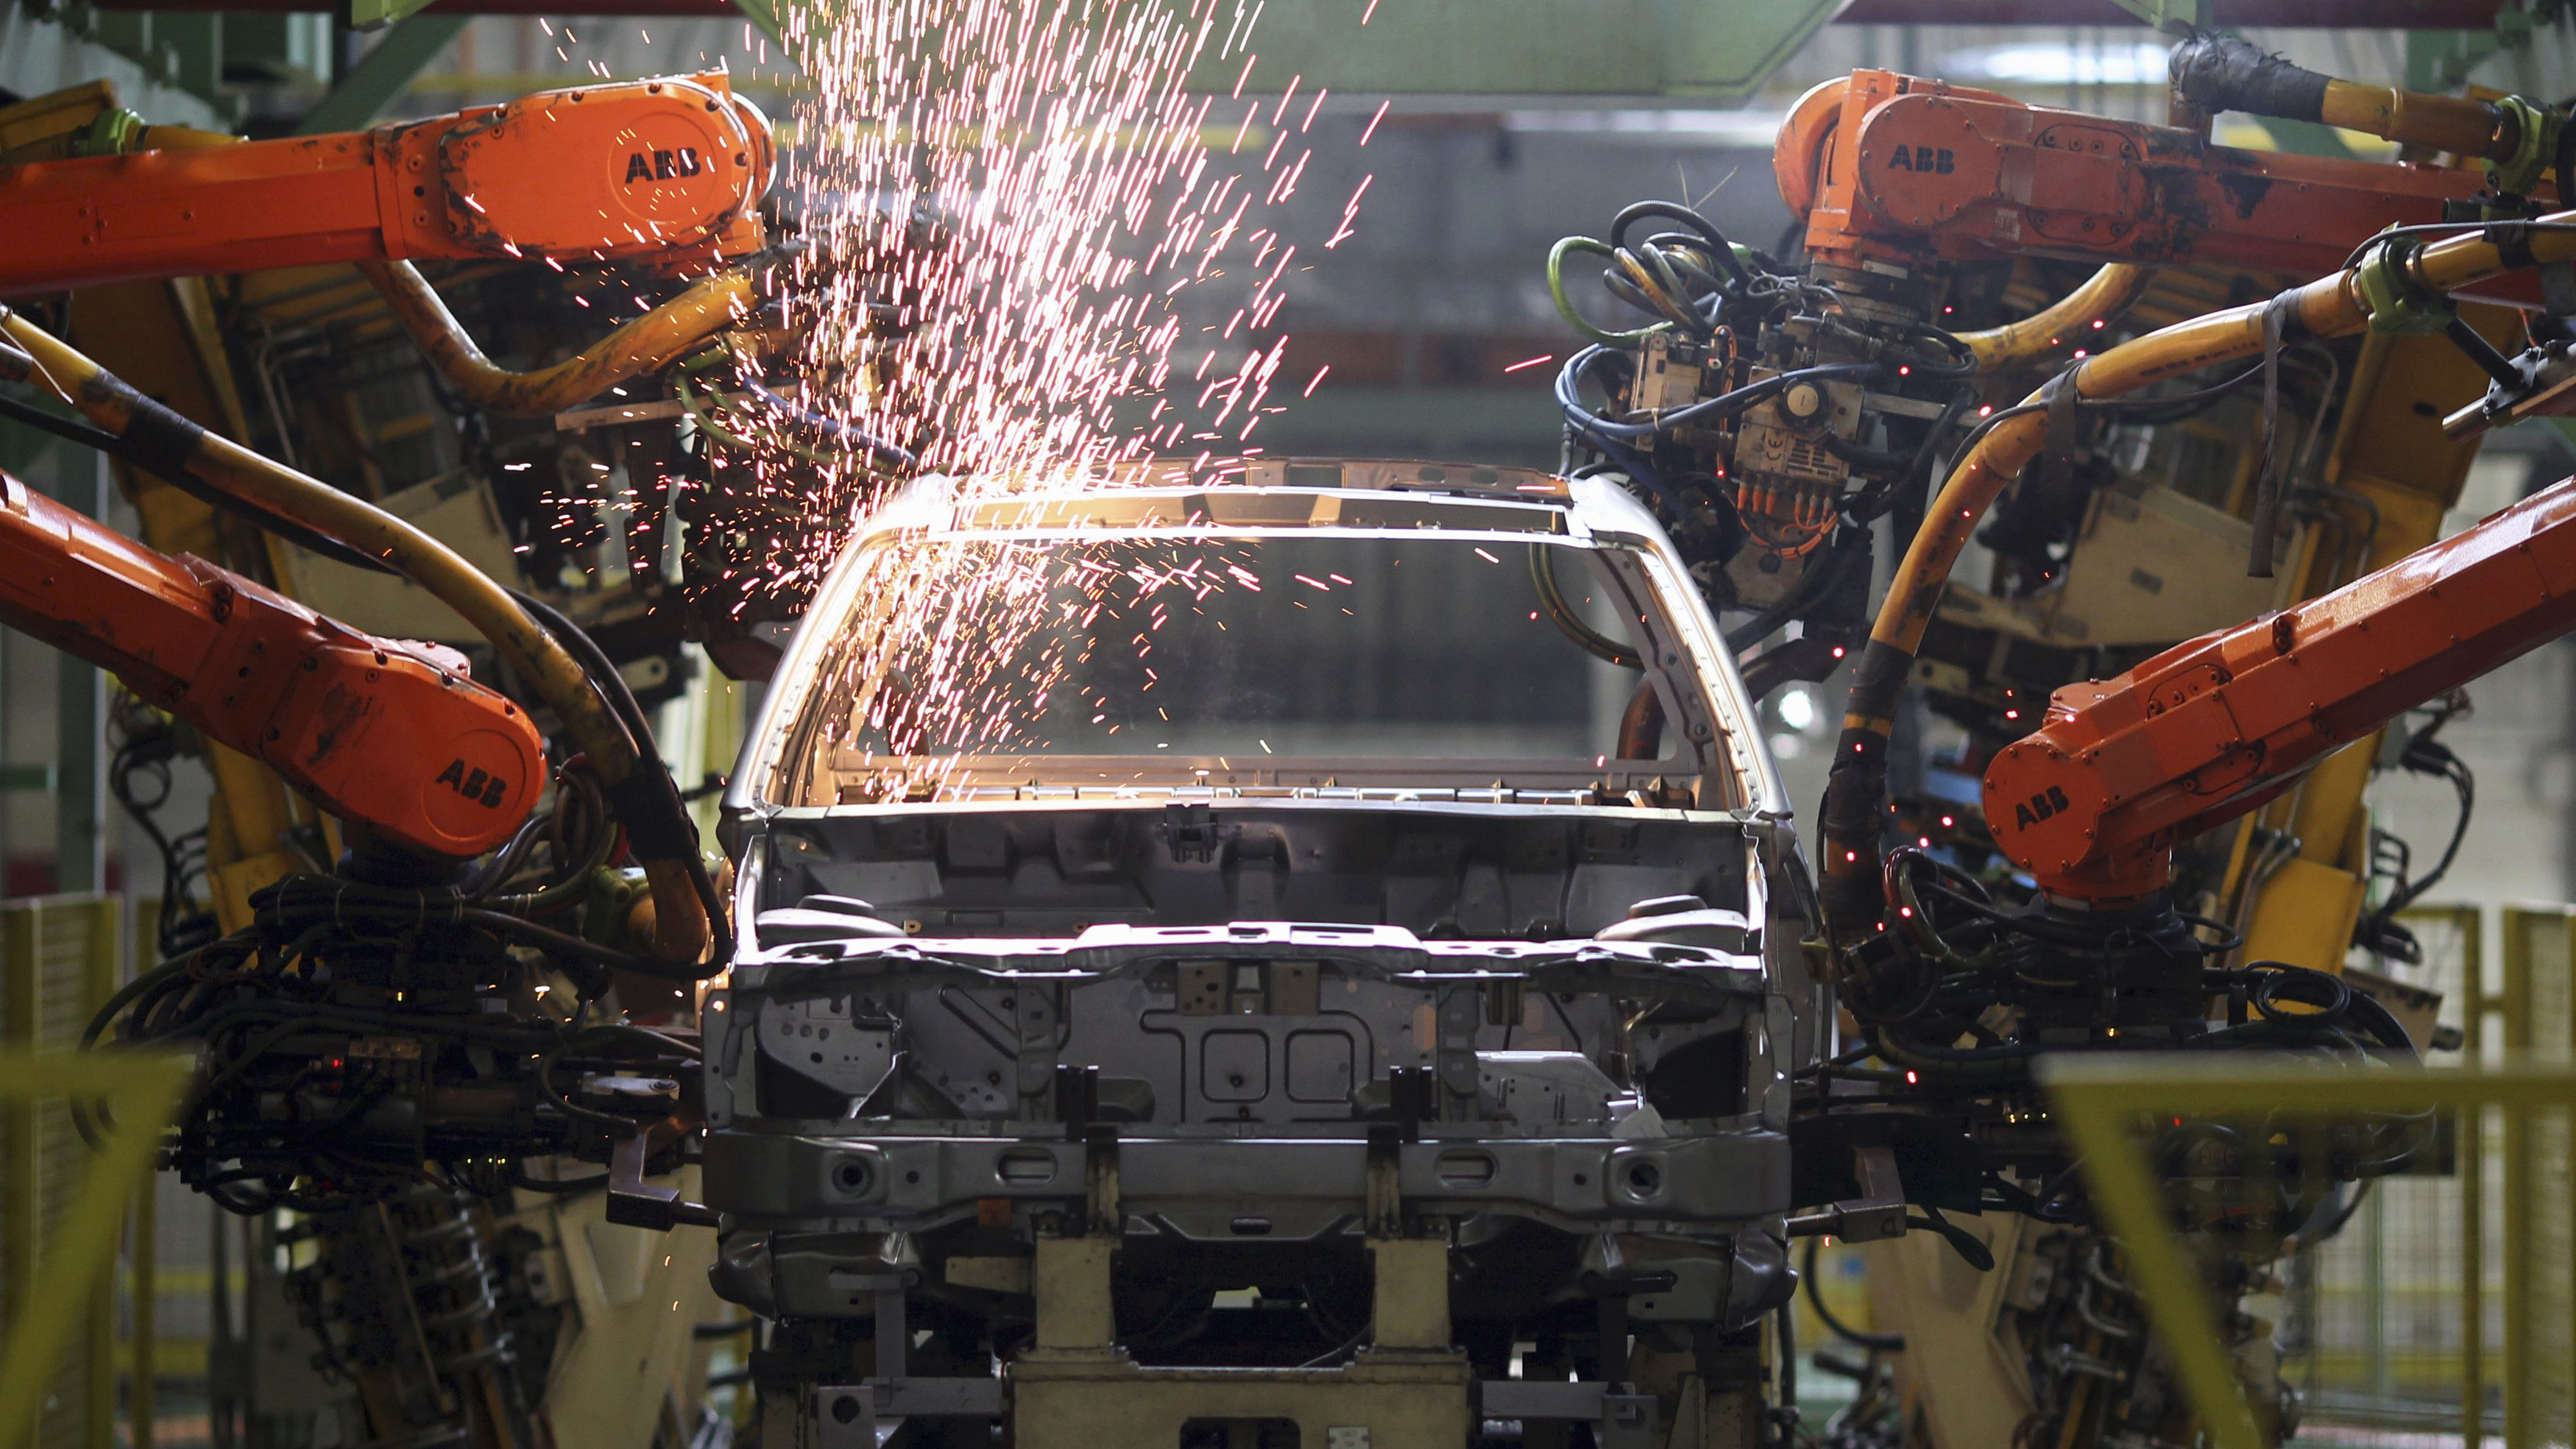 Robots weld cars at the Ford Motor Company's Sao Bernardo do Campo facility in Sao Bernardo do Campo June 14, 2012. Ford Motor Co expects the Brazilian auto market to set a new sales record by the end of the year despite a sluggish start, as recent tax breaks and record-low interest rates jumpstart stagnant business at dealerships. Picture taken June 14, 2012. REUTERS/Paulo Whitaker (BRAZIL - Tags: TRANSPORT BUSINESS)